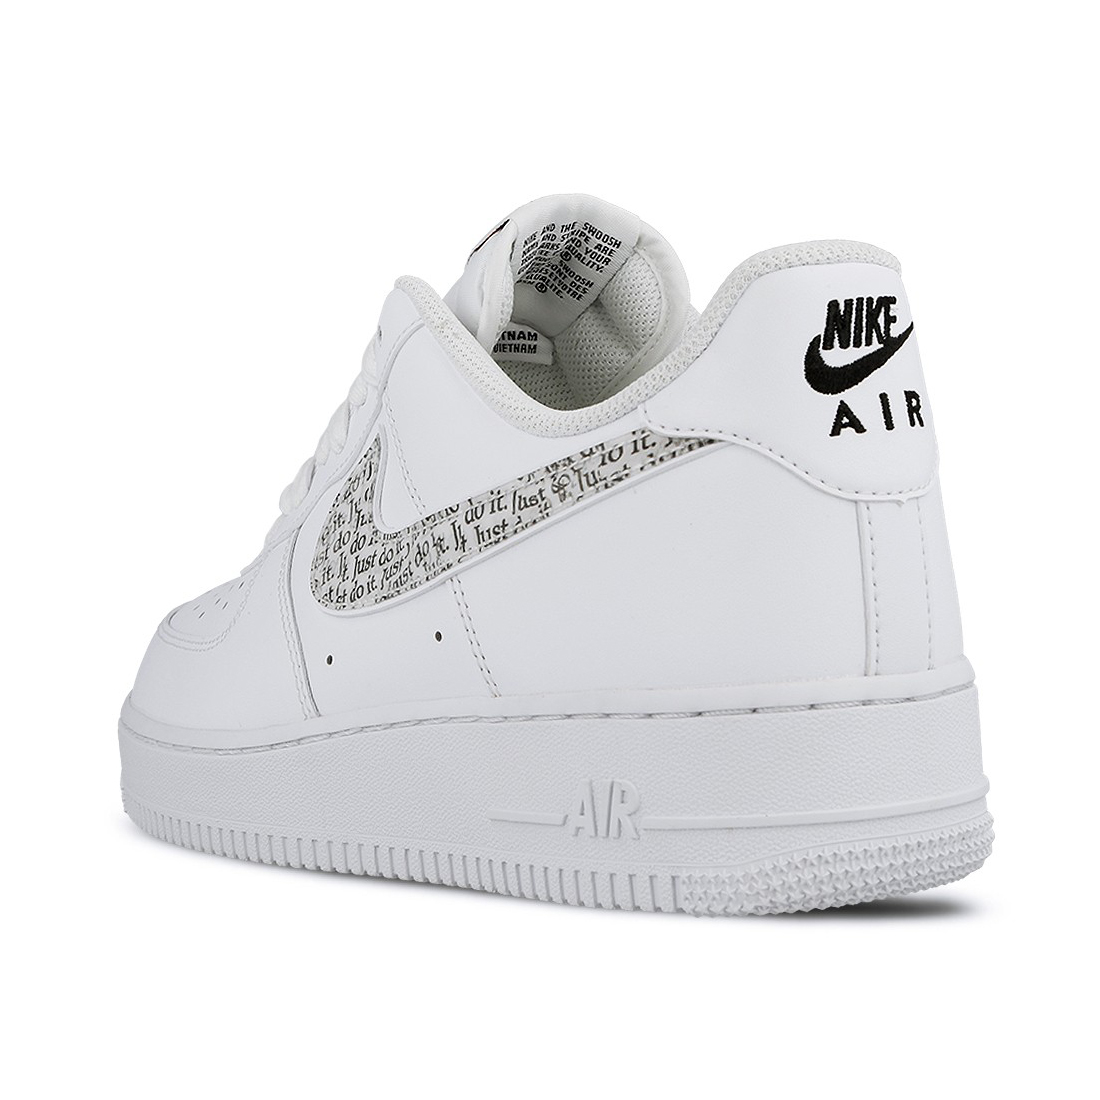 """a728236fe904 Мужские кроссовки Nike Air Force 1 '07 LV8 """"Just Do It"""" Pack"""